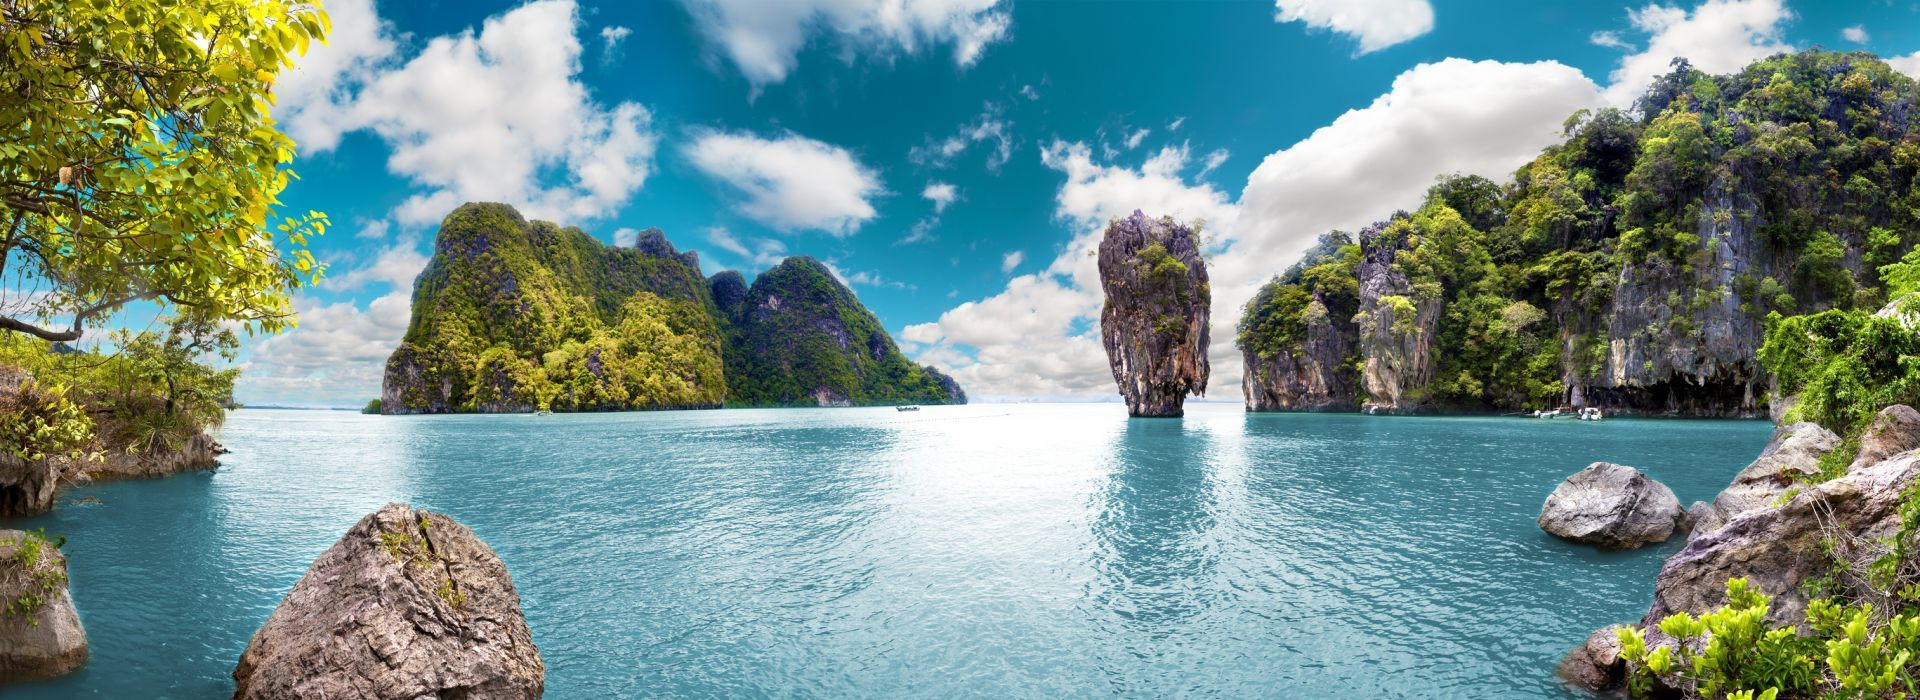 Sightseeing, attractions, culture and history Tours in Krabi